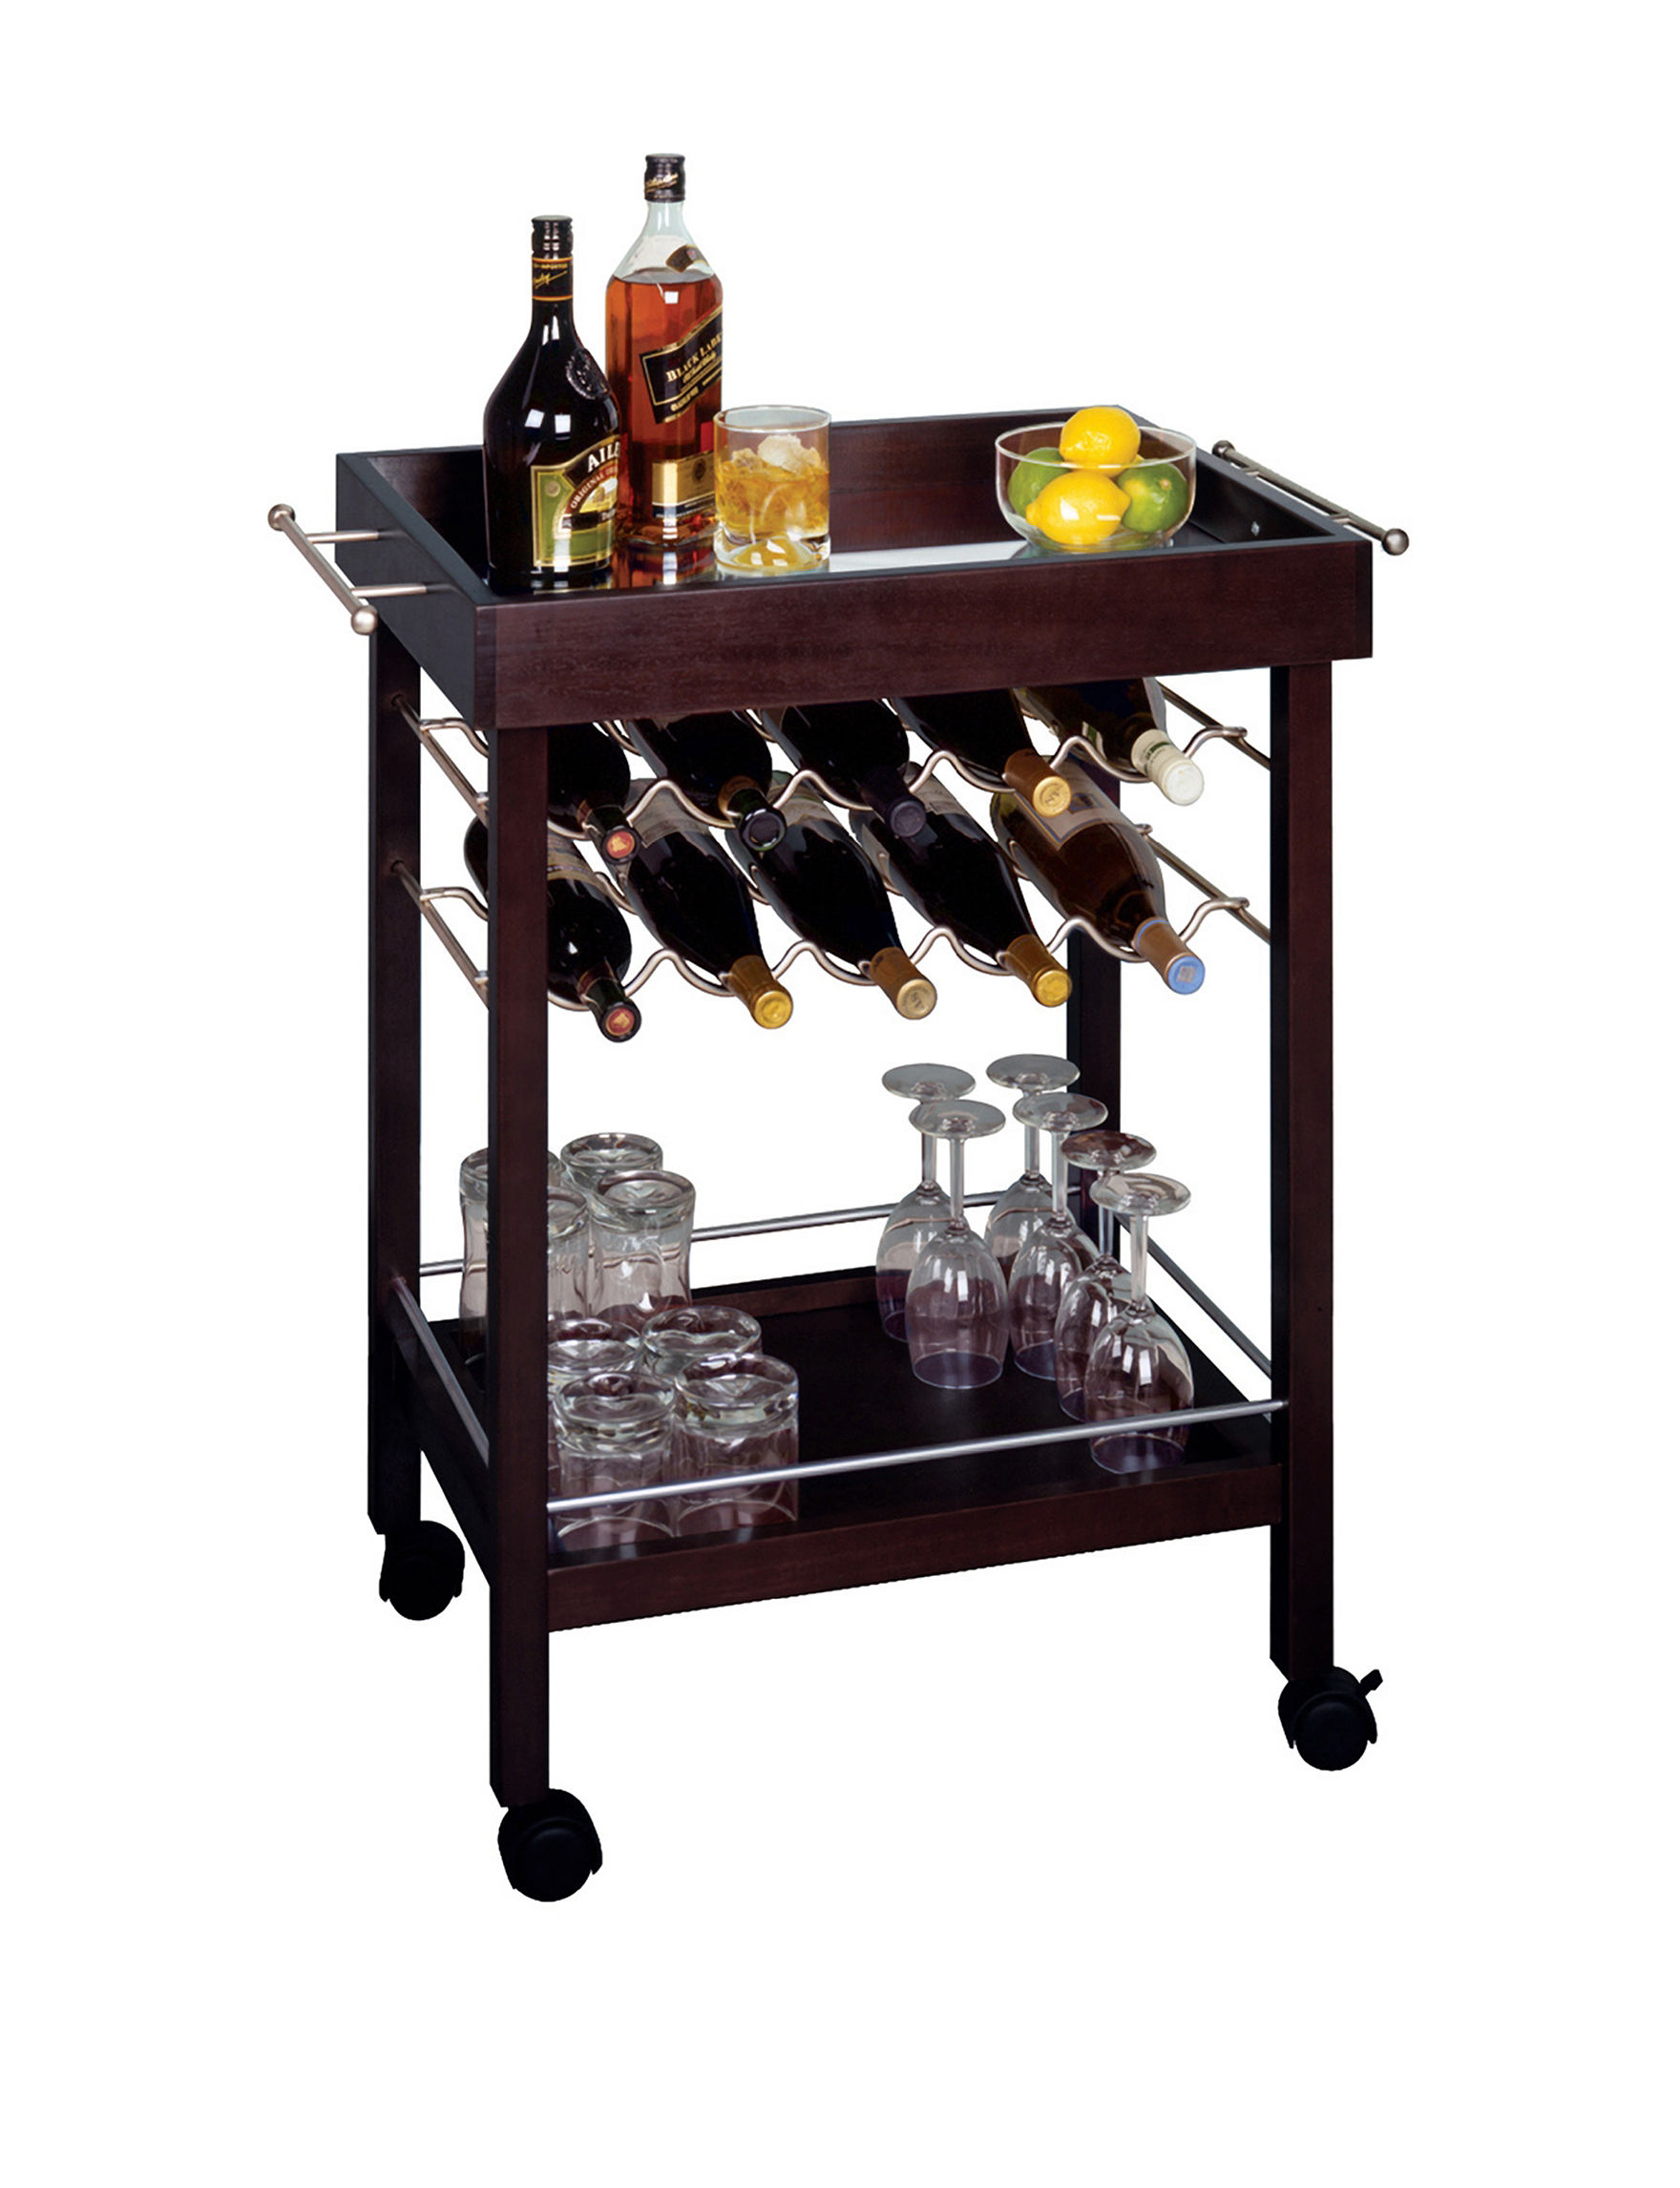 Winsome Chocolate Kitchen Islands & Carts Kitchen & Dining Furniture